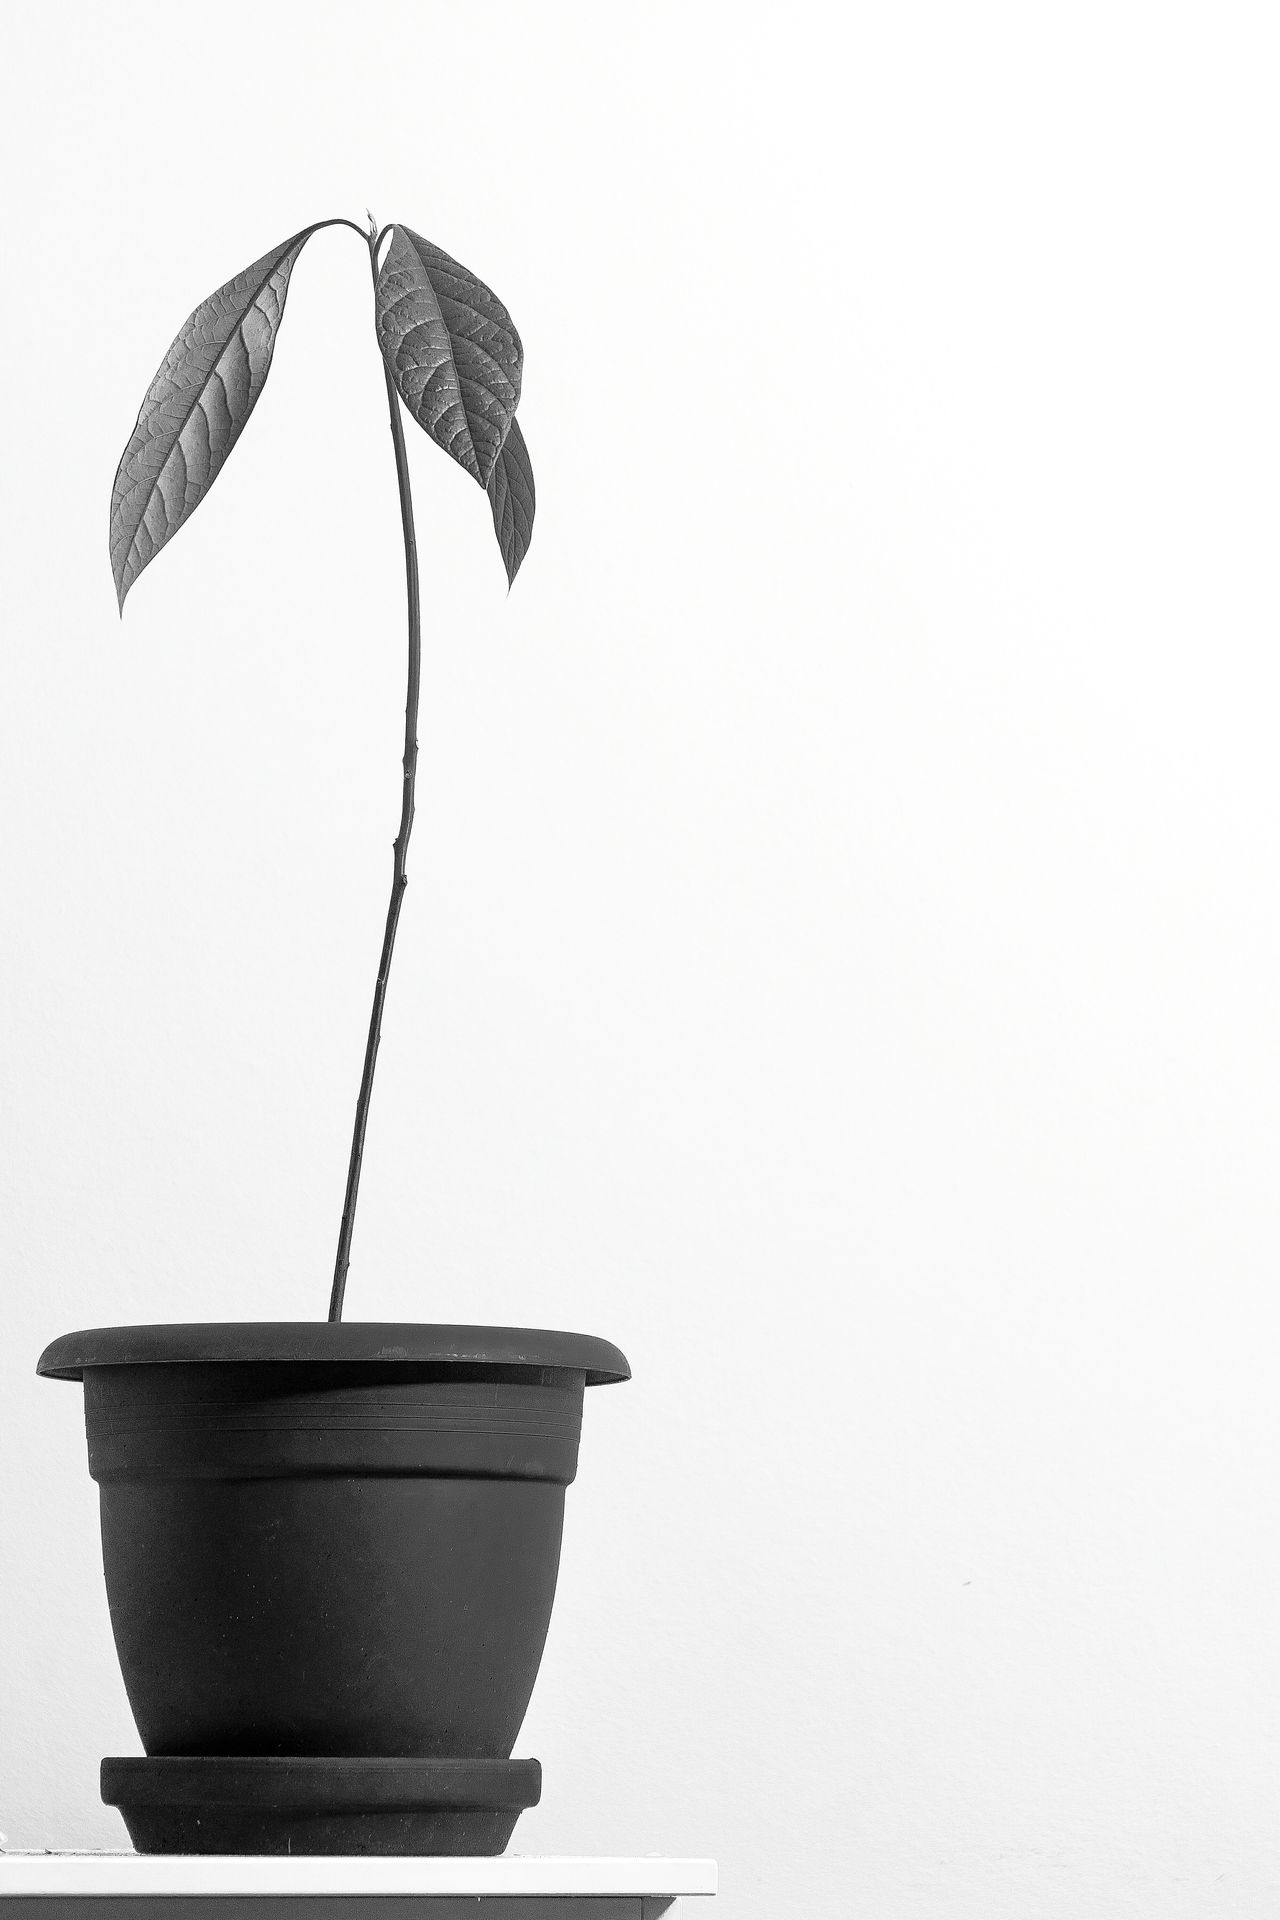 Growth No People Flower Indoors  Nature Minimal Sony A7mk2 Flowerporn Growing Plants Black&white Black & White B&w Photography Check This Out Showcase: January StillLifePhotography Artistic White Background Daily Commute EyeEm Masterclass Still Life Eye4photography  Growth SONY A7ii Plant Avocado